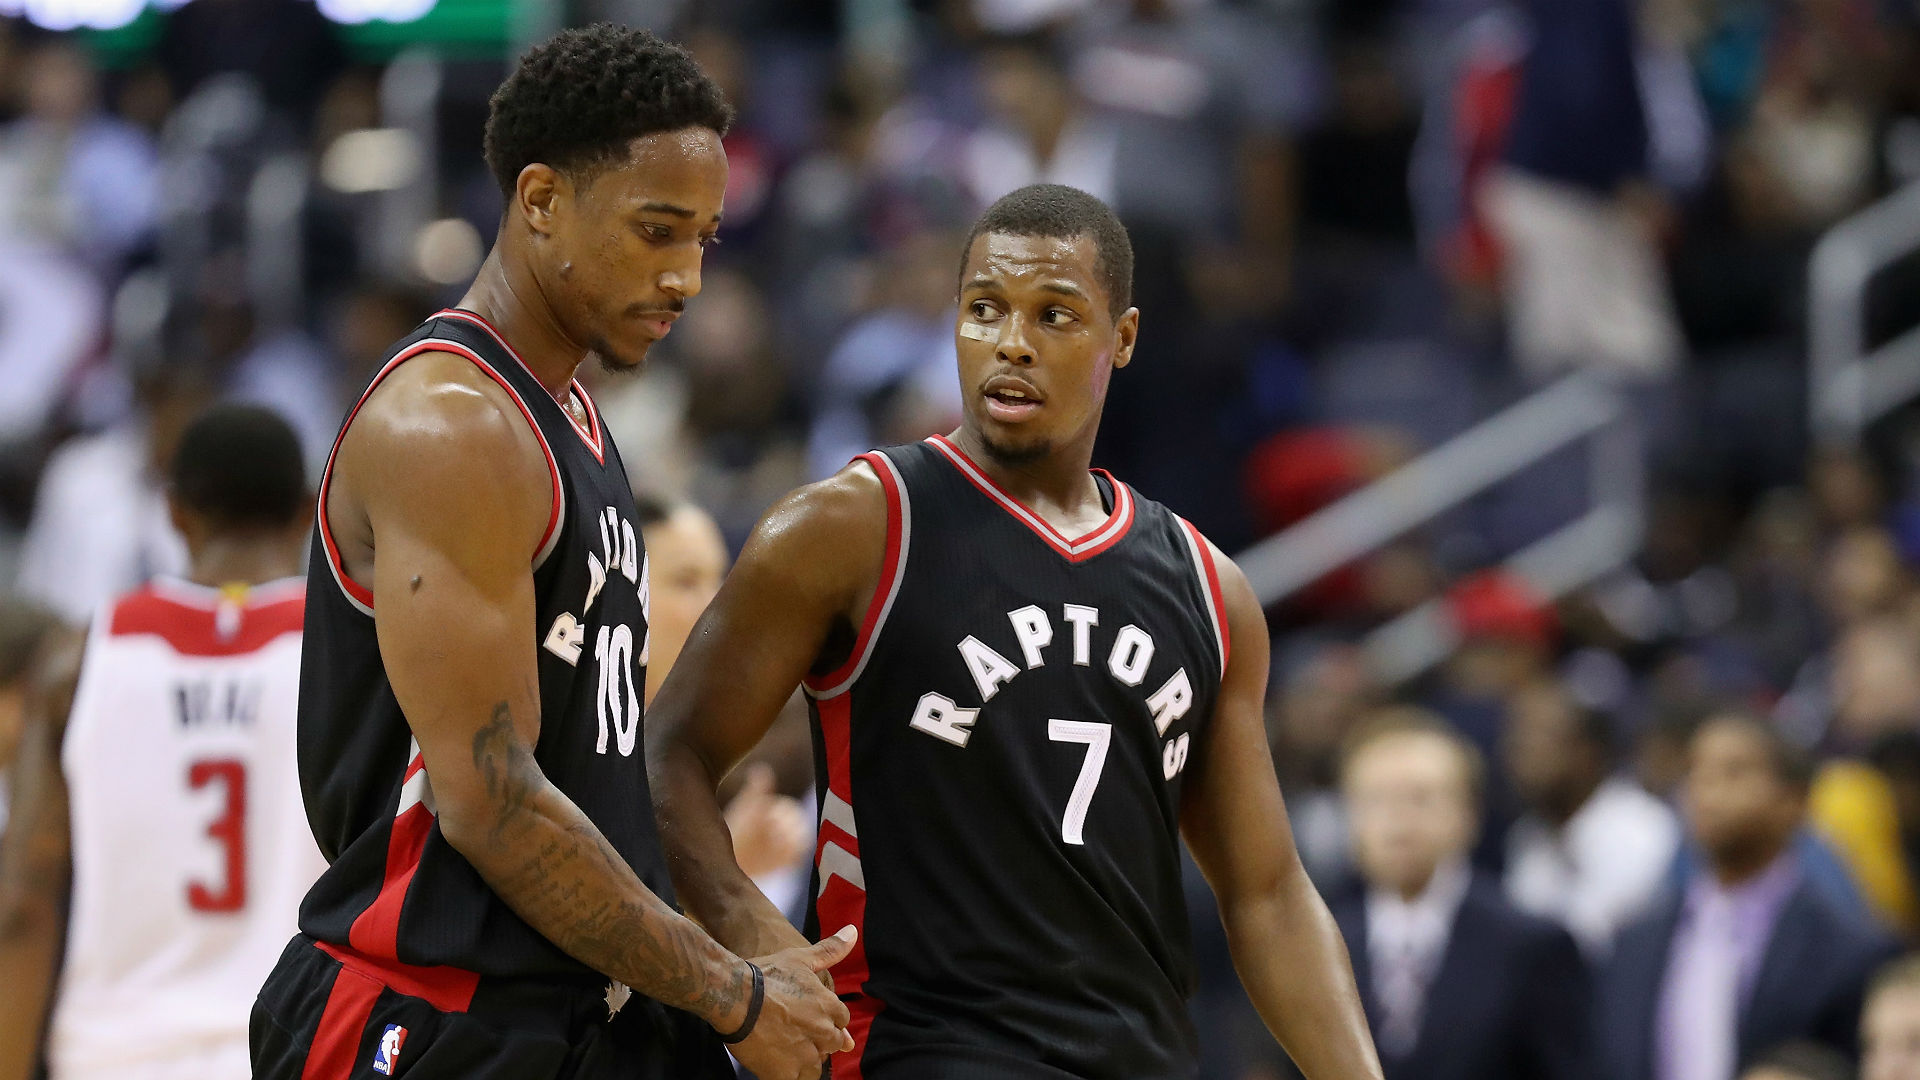 Raptors' Lowry lifted to locker-room by teammates after hard fall against Nets